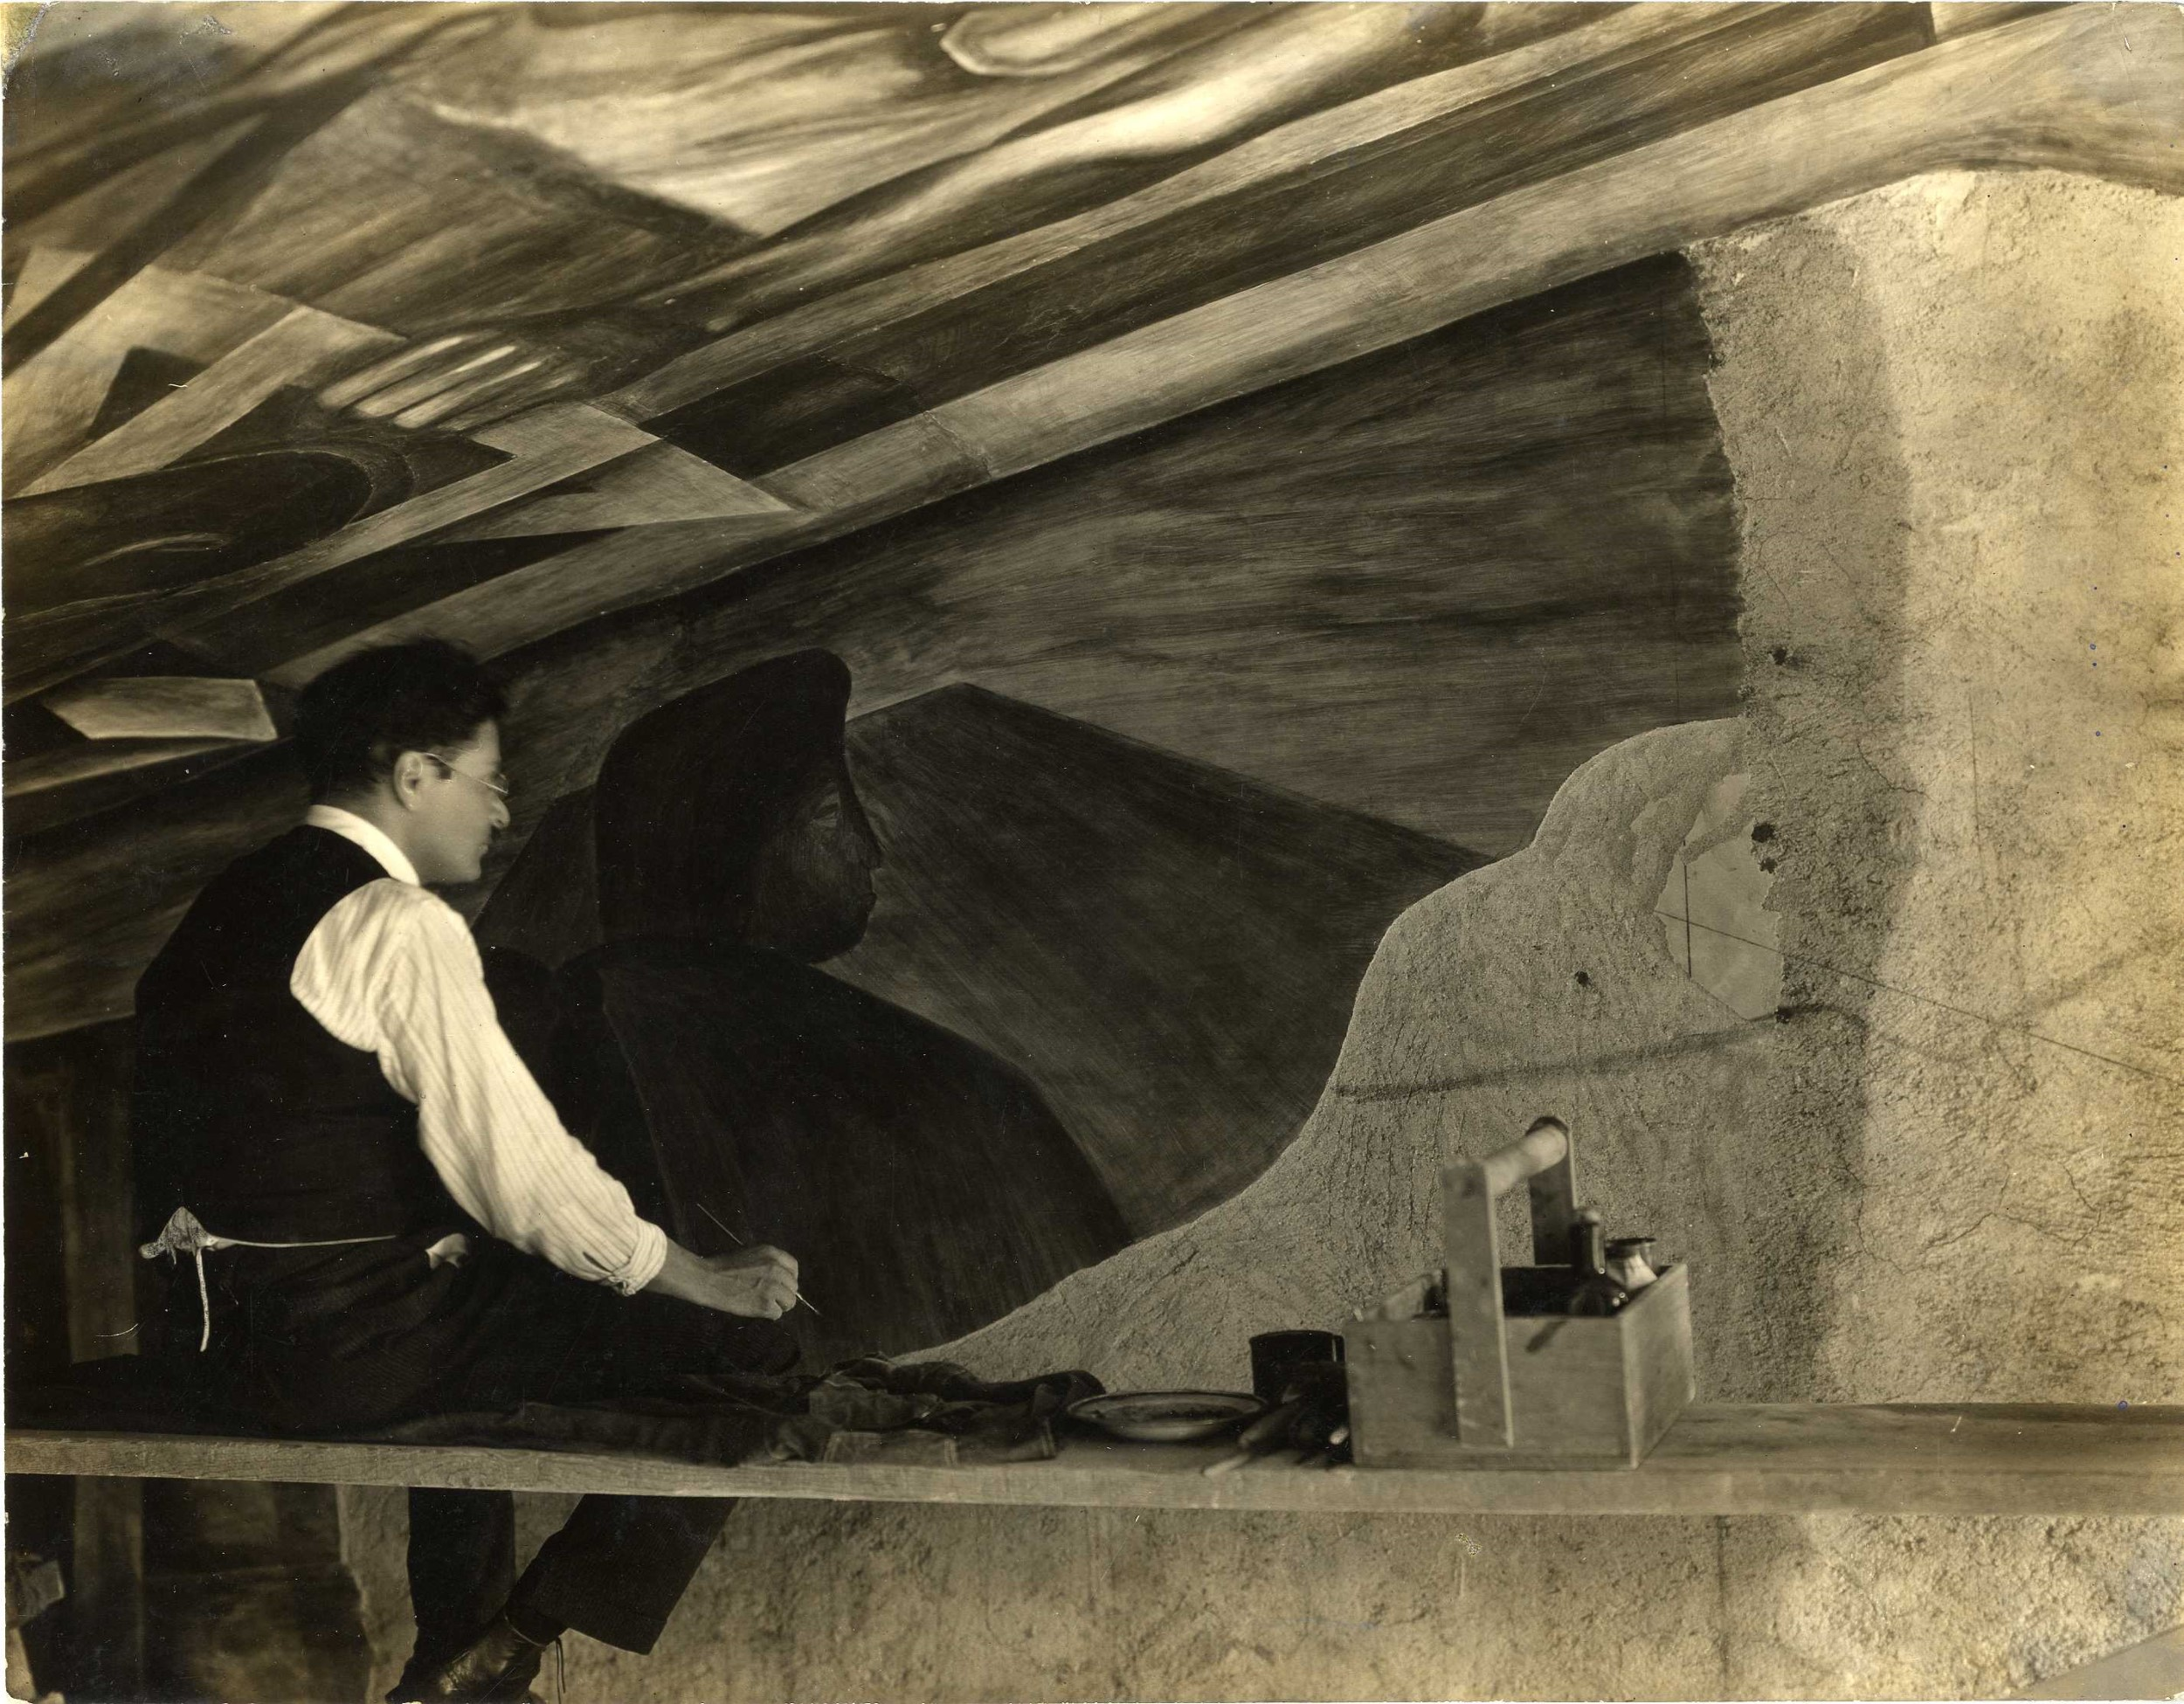 Jos� Clemente Orozco at work on a mural, 1927